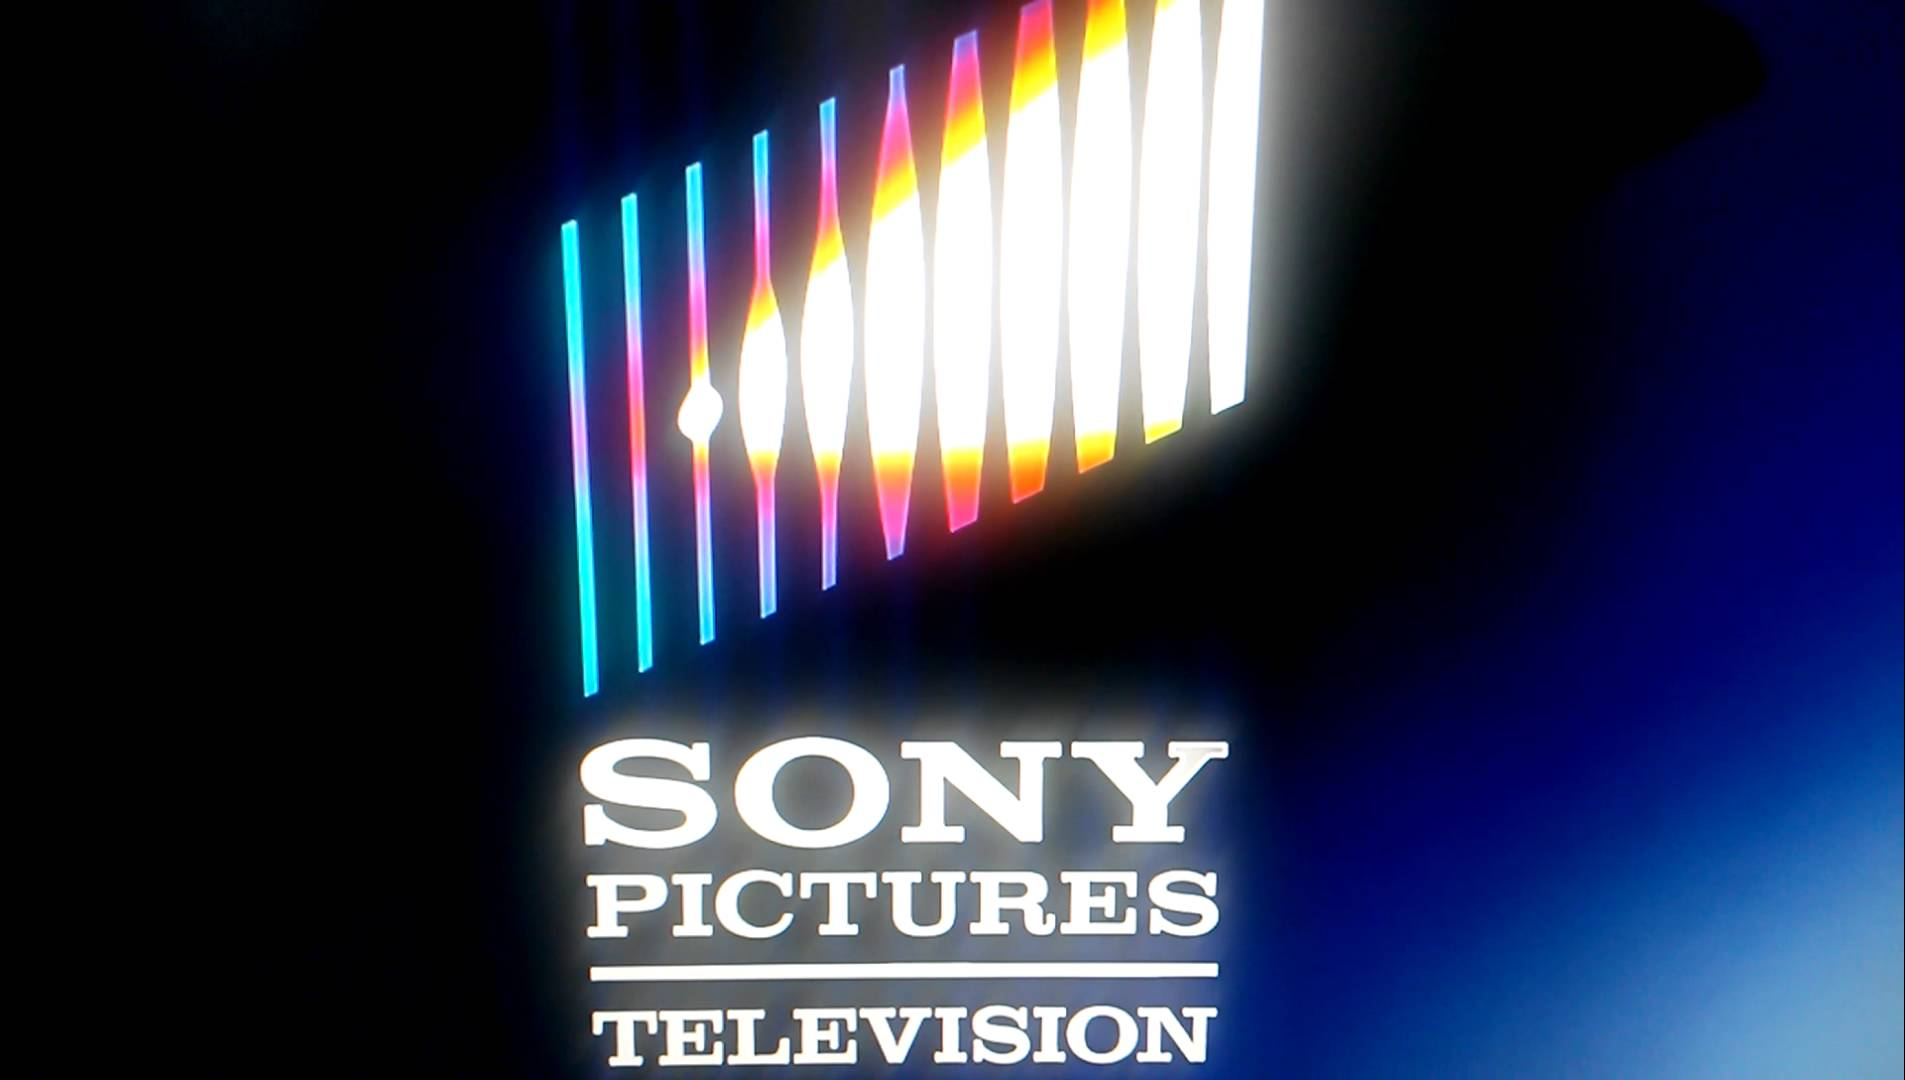 sony pictures entertainm knights - HD1905×1080